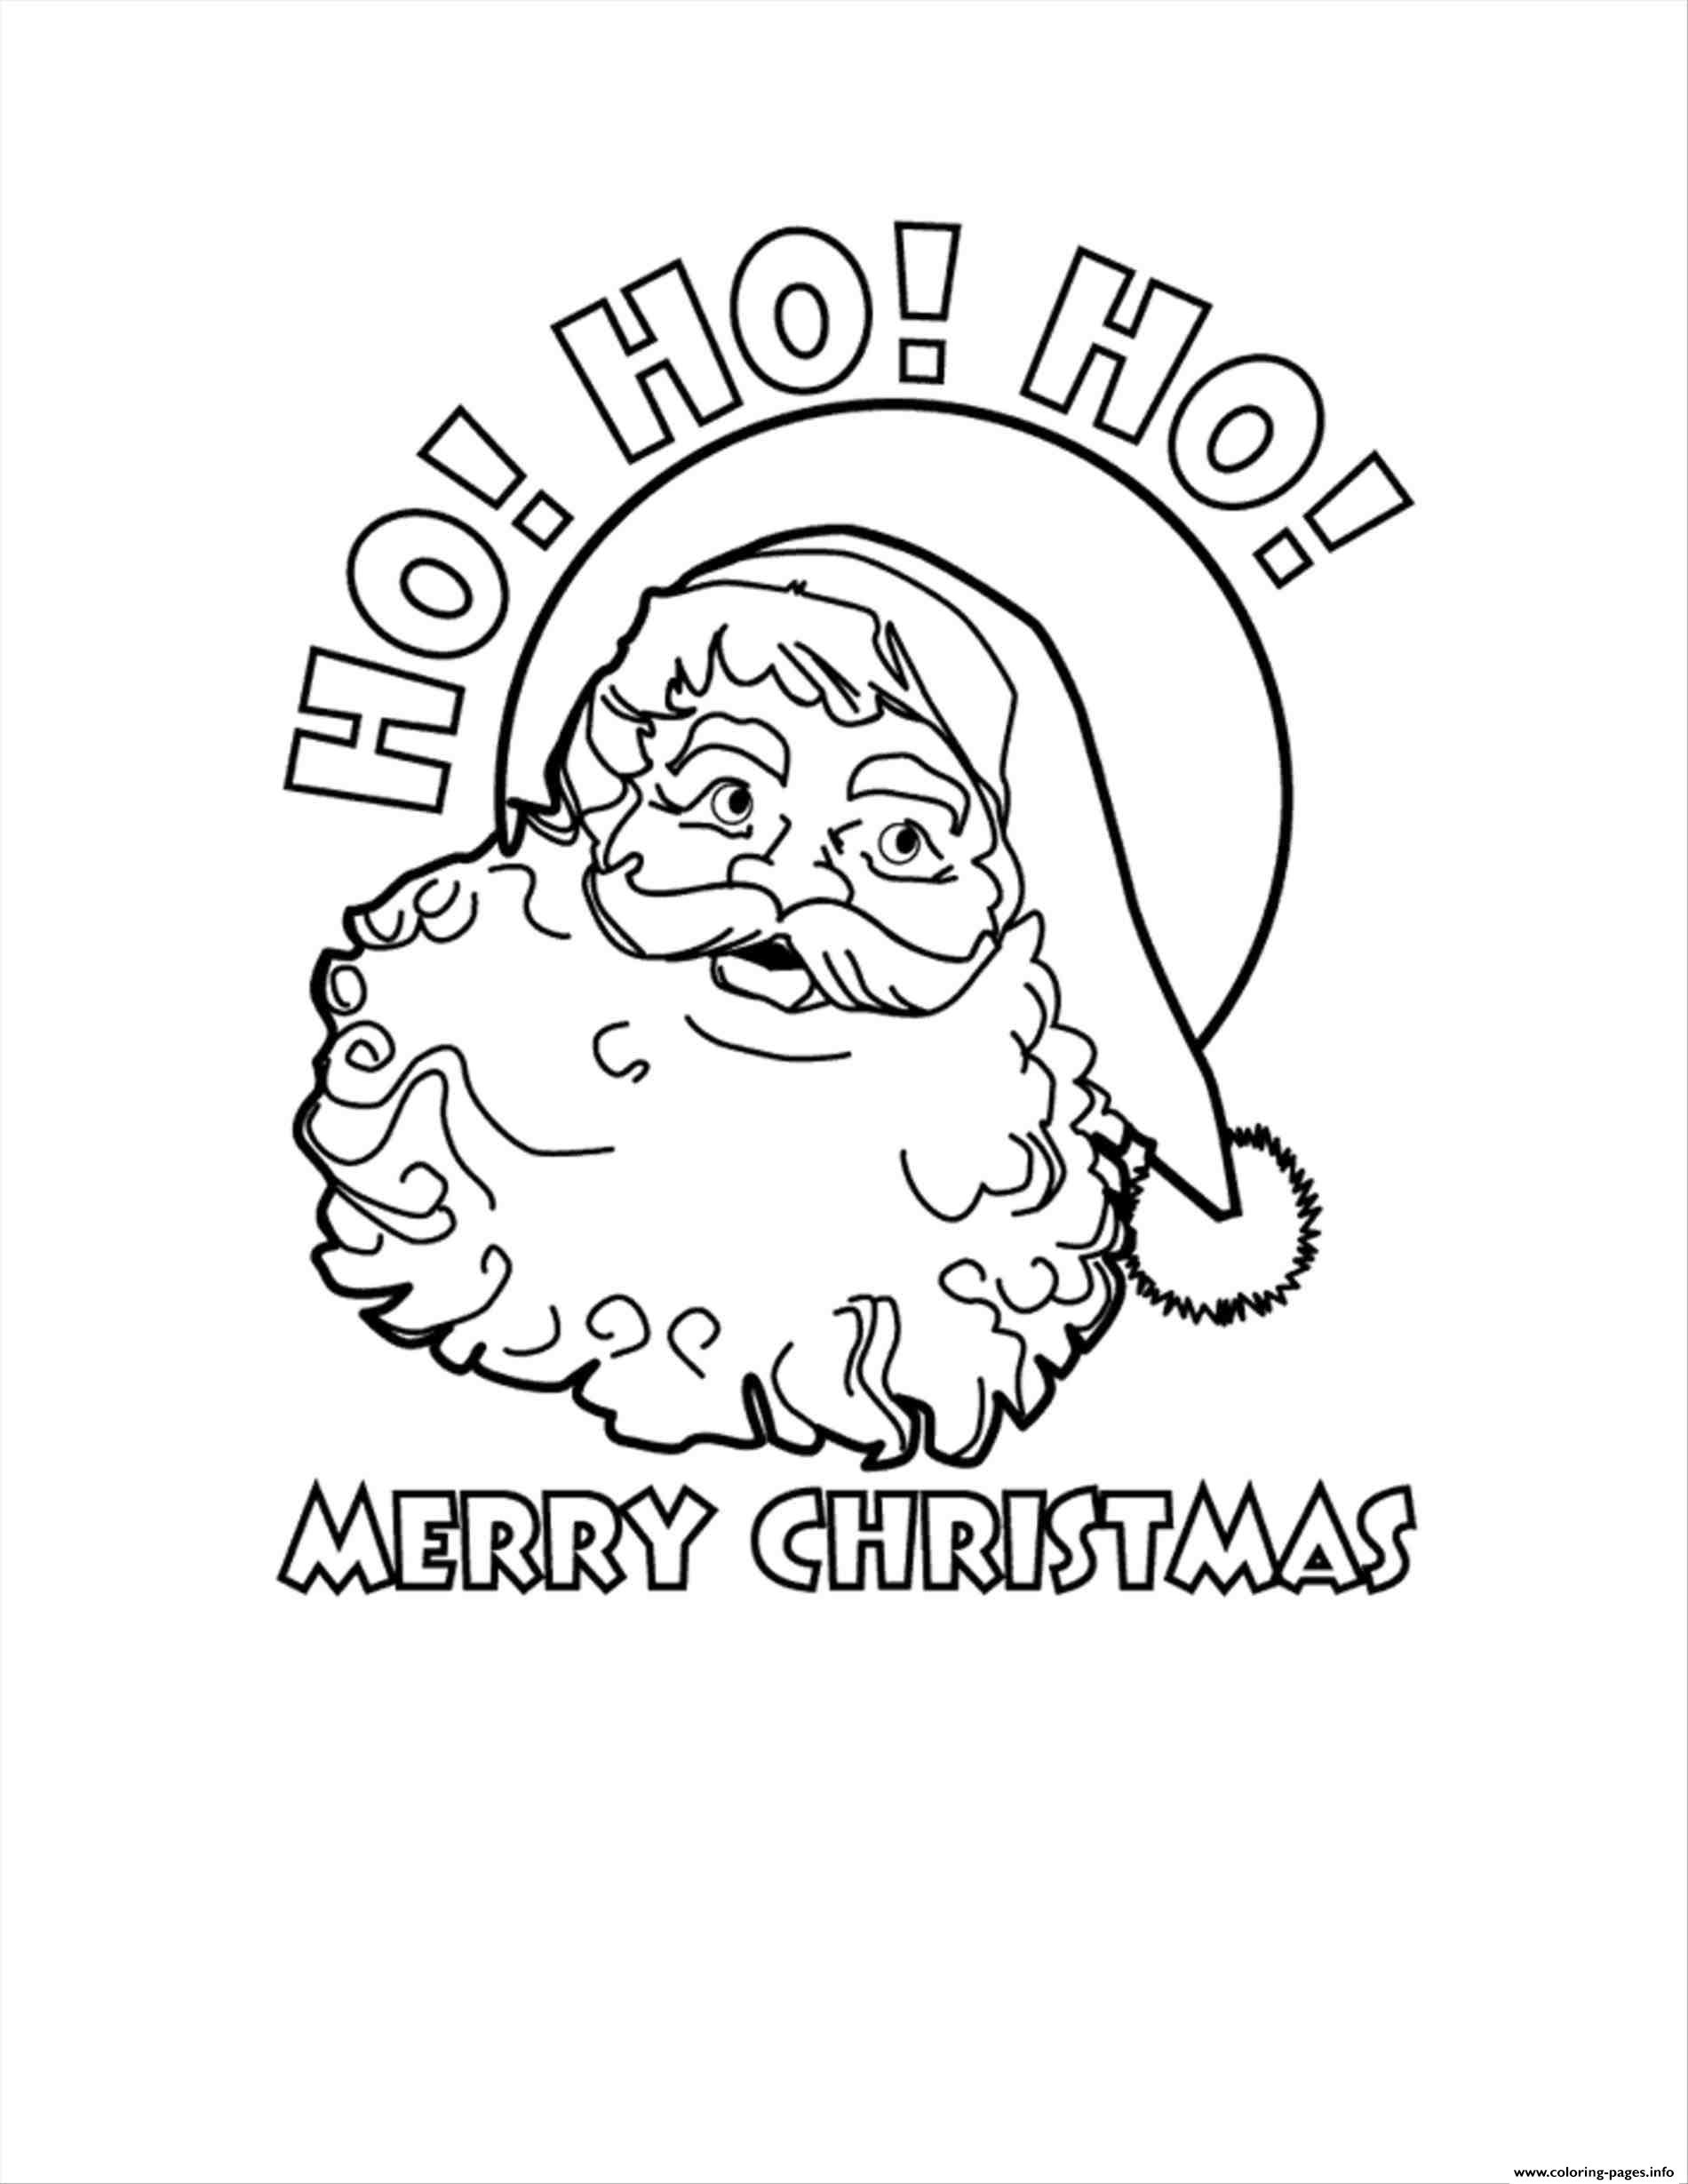 Santa Claus Ho Ho Ho Merry Christmas Coloring Pages Printable